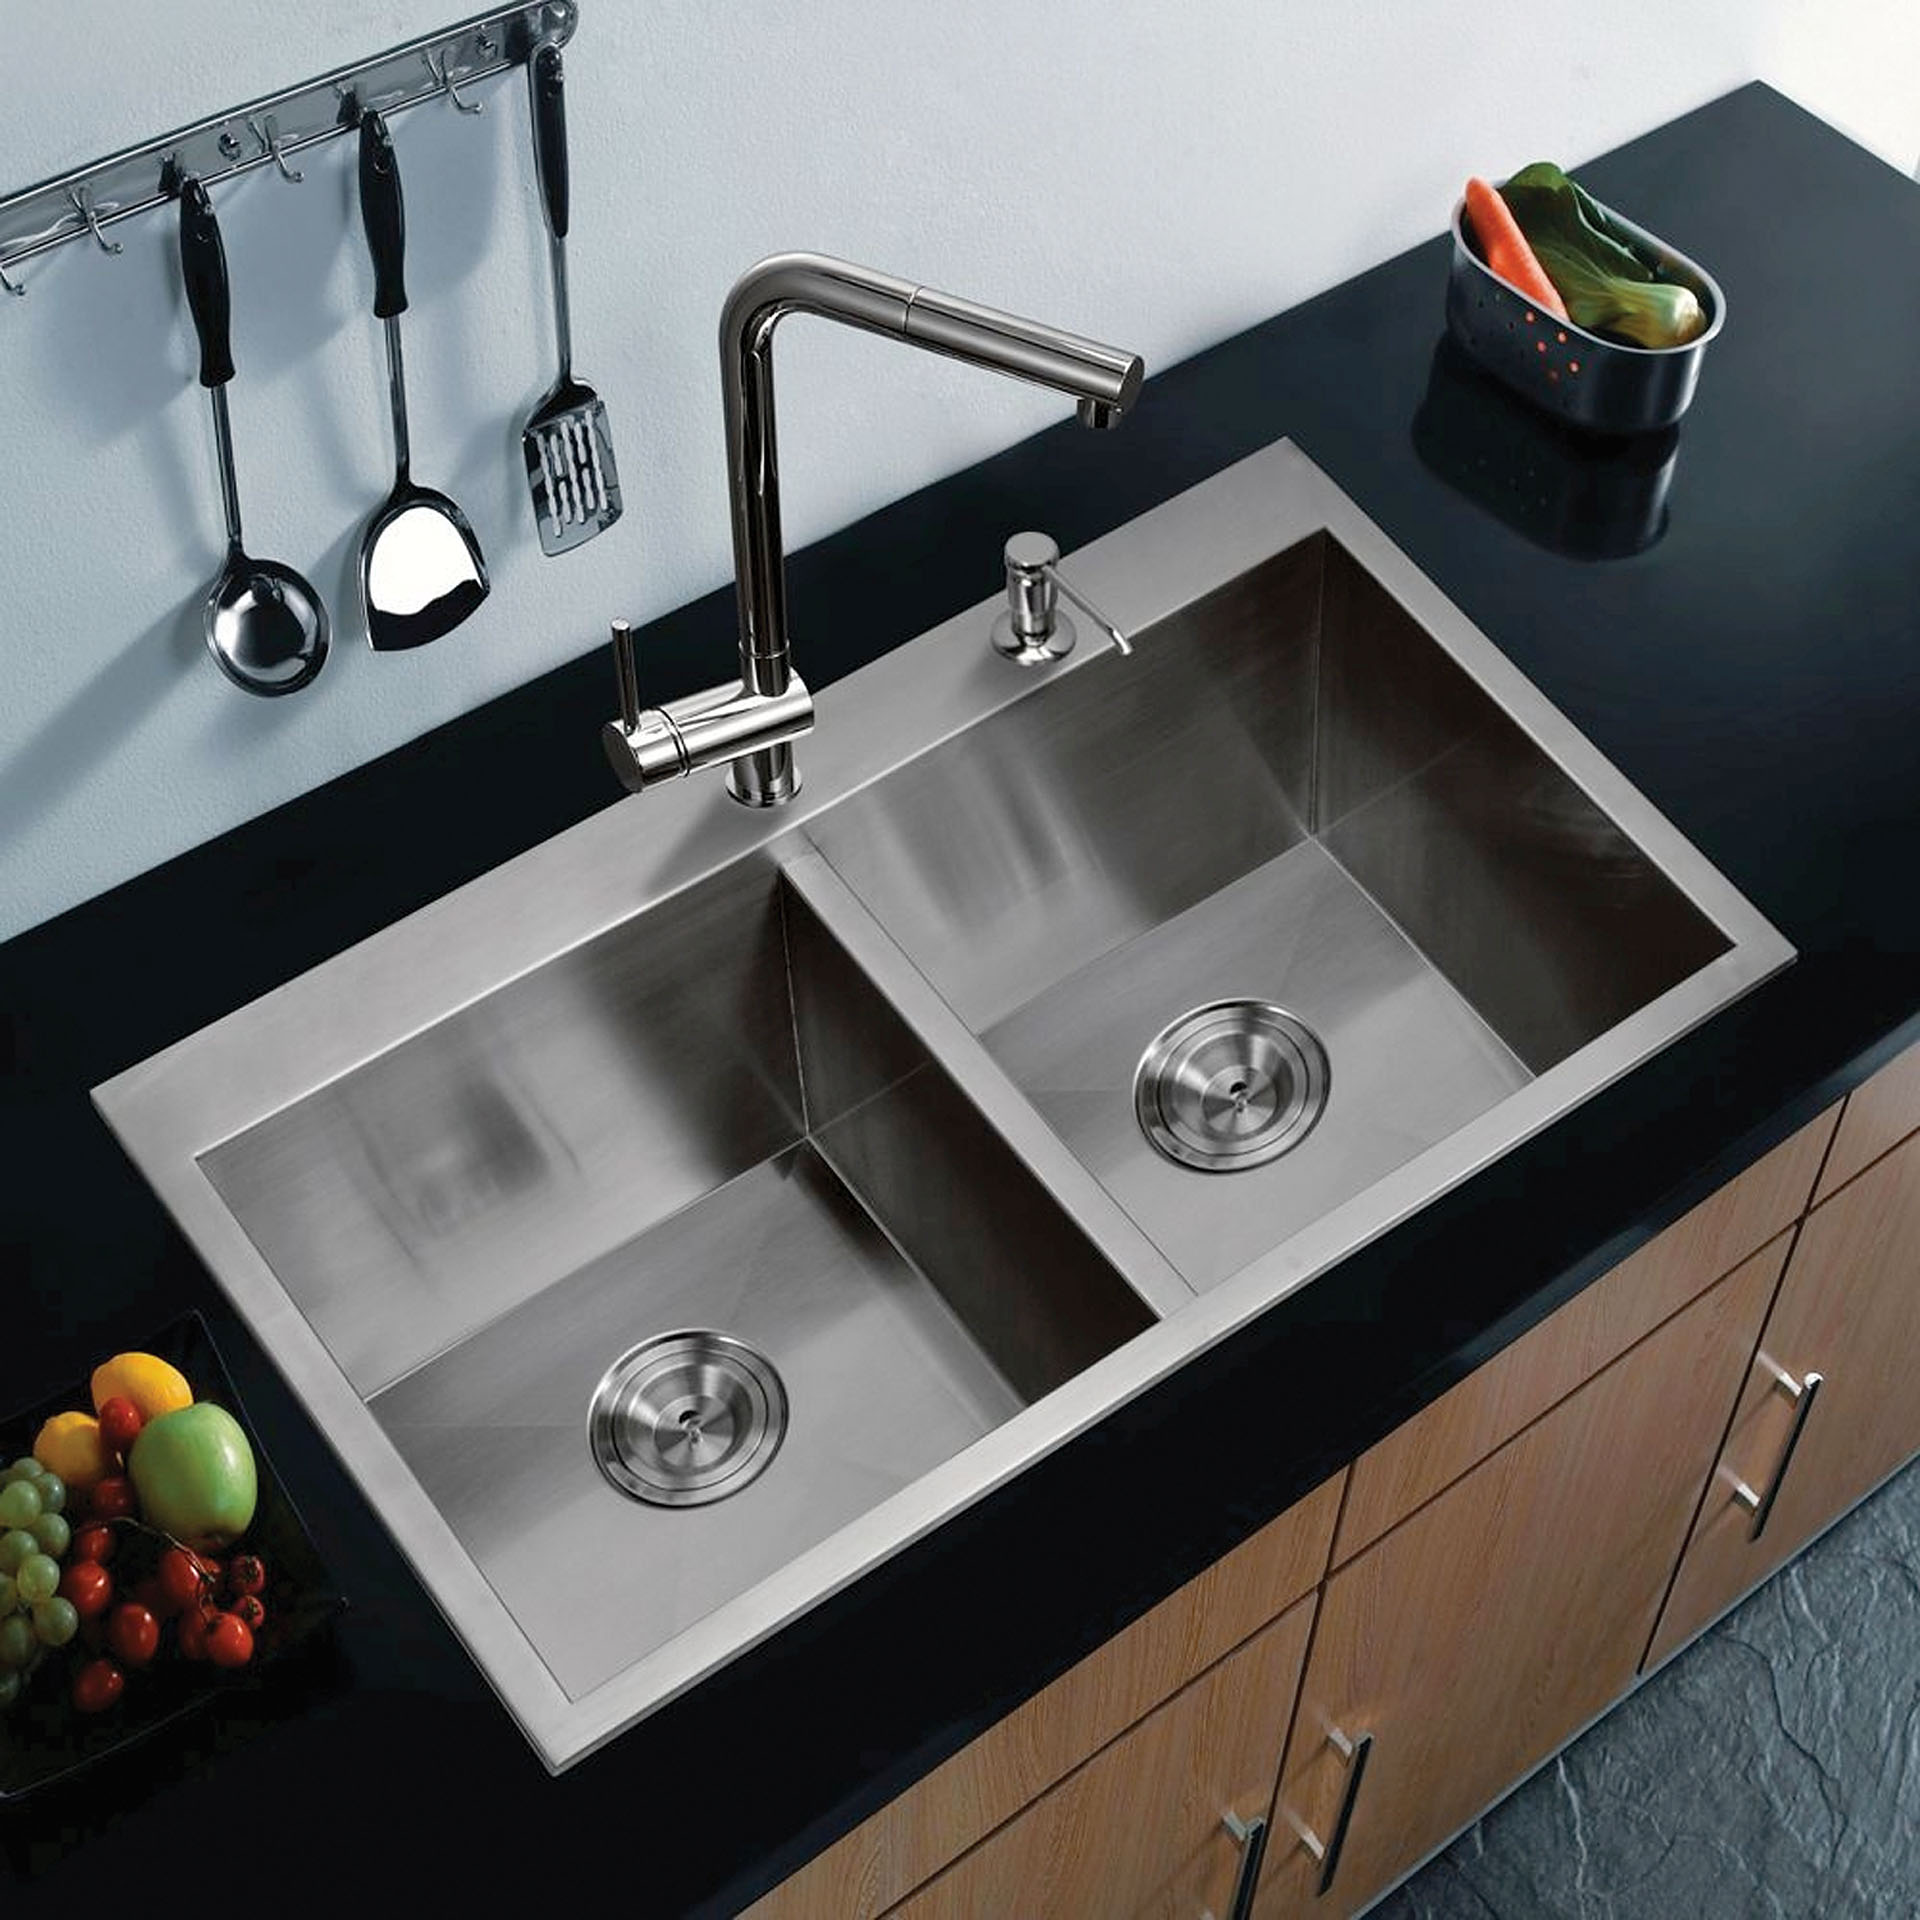 What kind of sink to choose for the kitchen